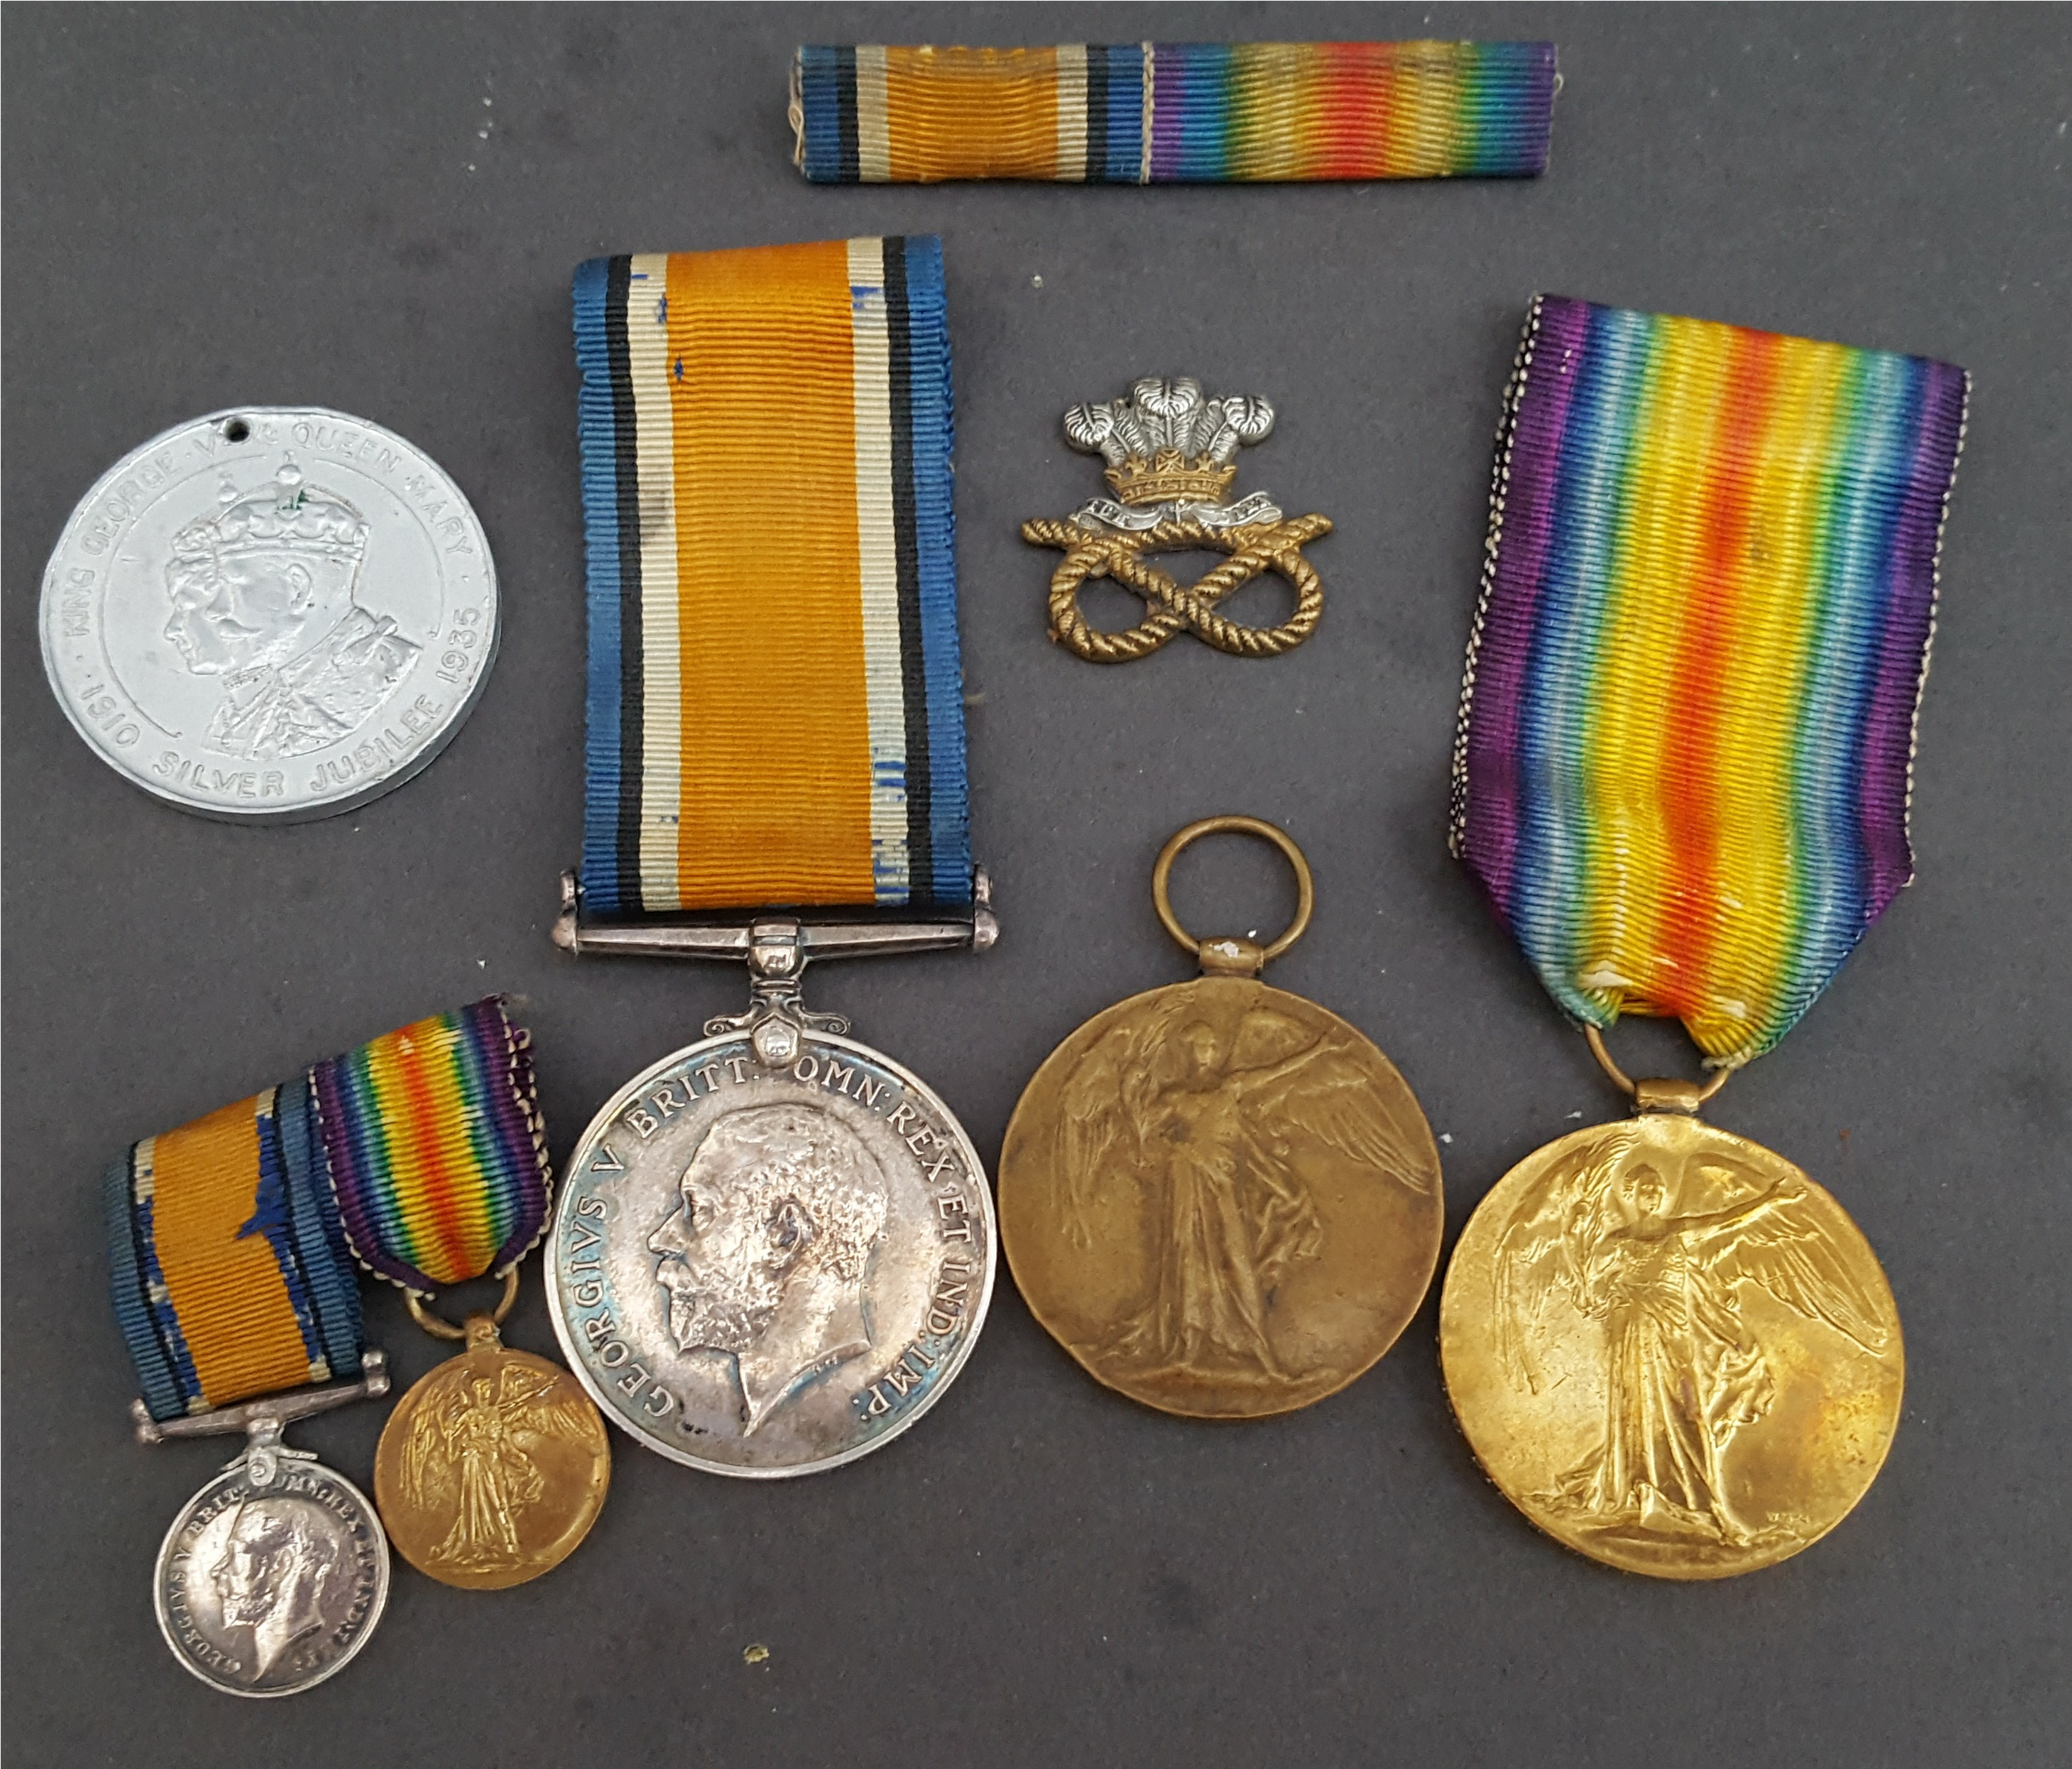 Lot 9 - Military Medals WWI PT G. Thompson 18307 Cheshire R. Pt. H Hill 73180 Welsh R. Plus Miniatures